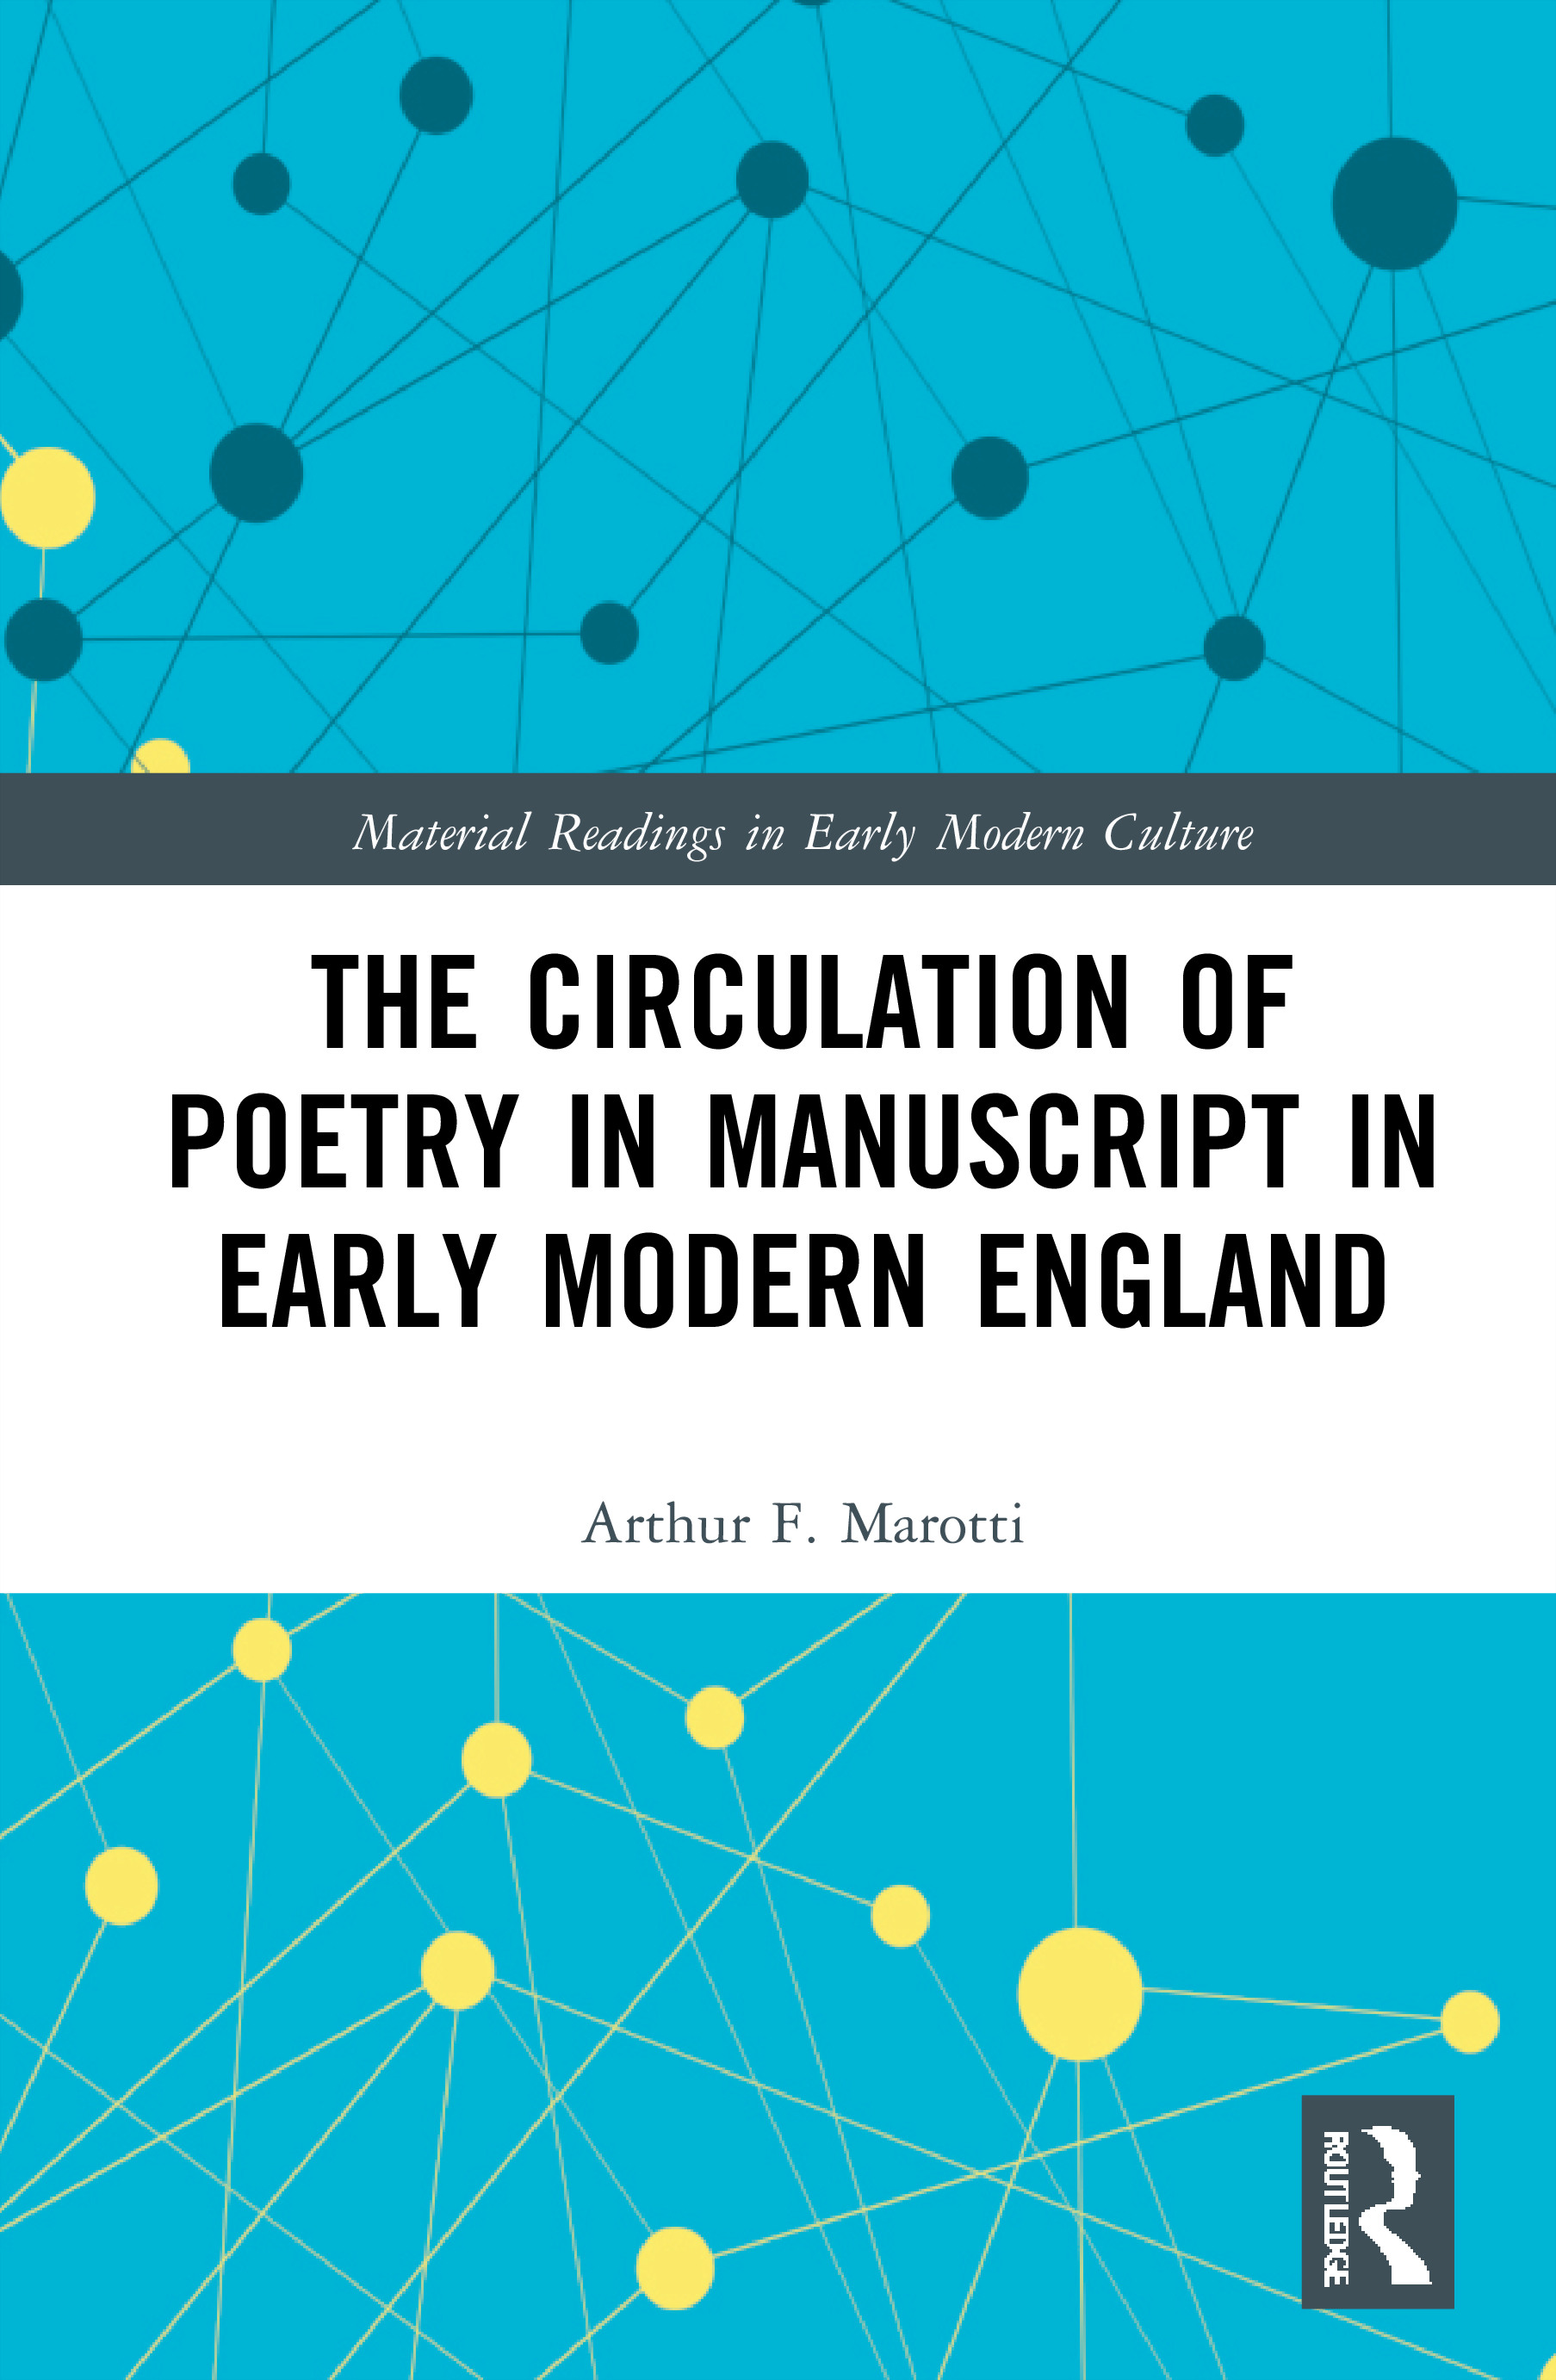 Rare or Unique Poems in Early Modern English Manuscripts